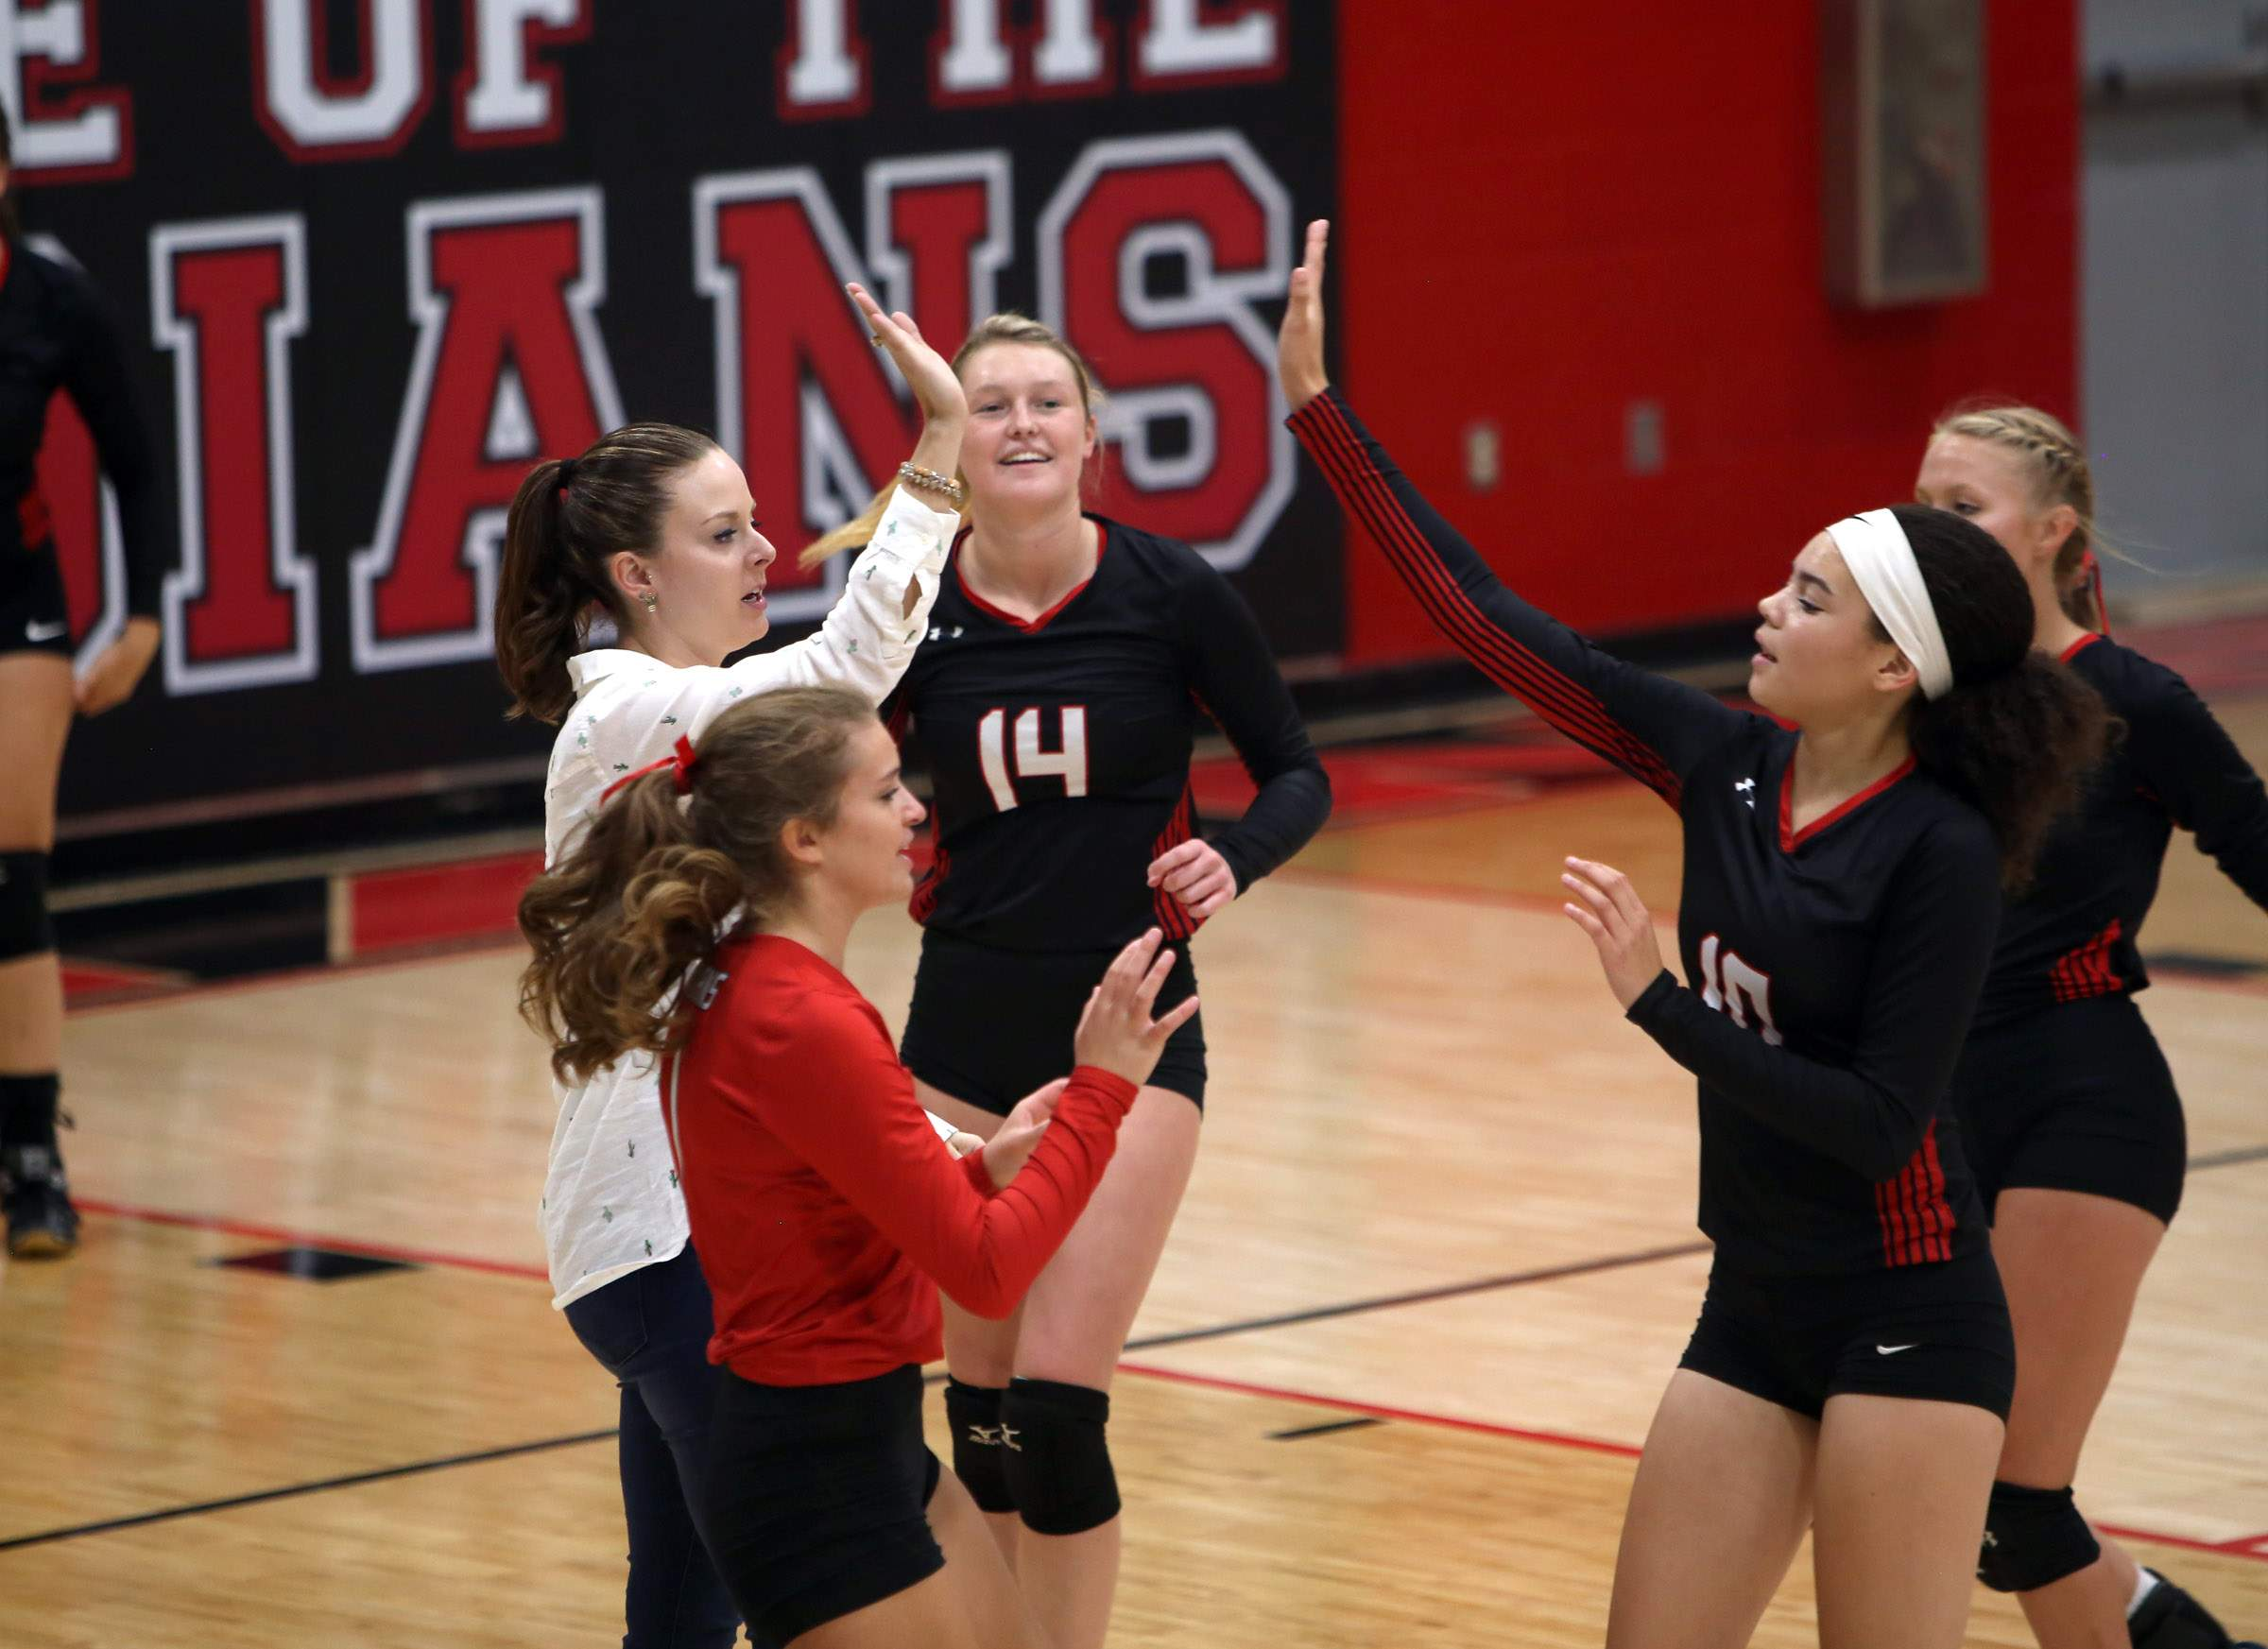 Johnston City coach Ashleigh Reeves gives a high five to Alexis Turner with Reilly Baker (14) and libero Gia Ordonez nearby Wednesday night.